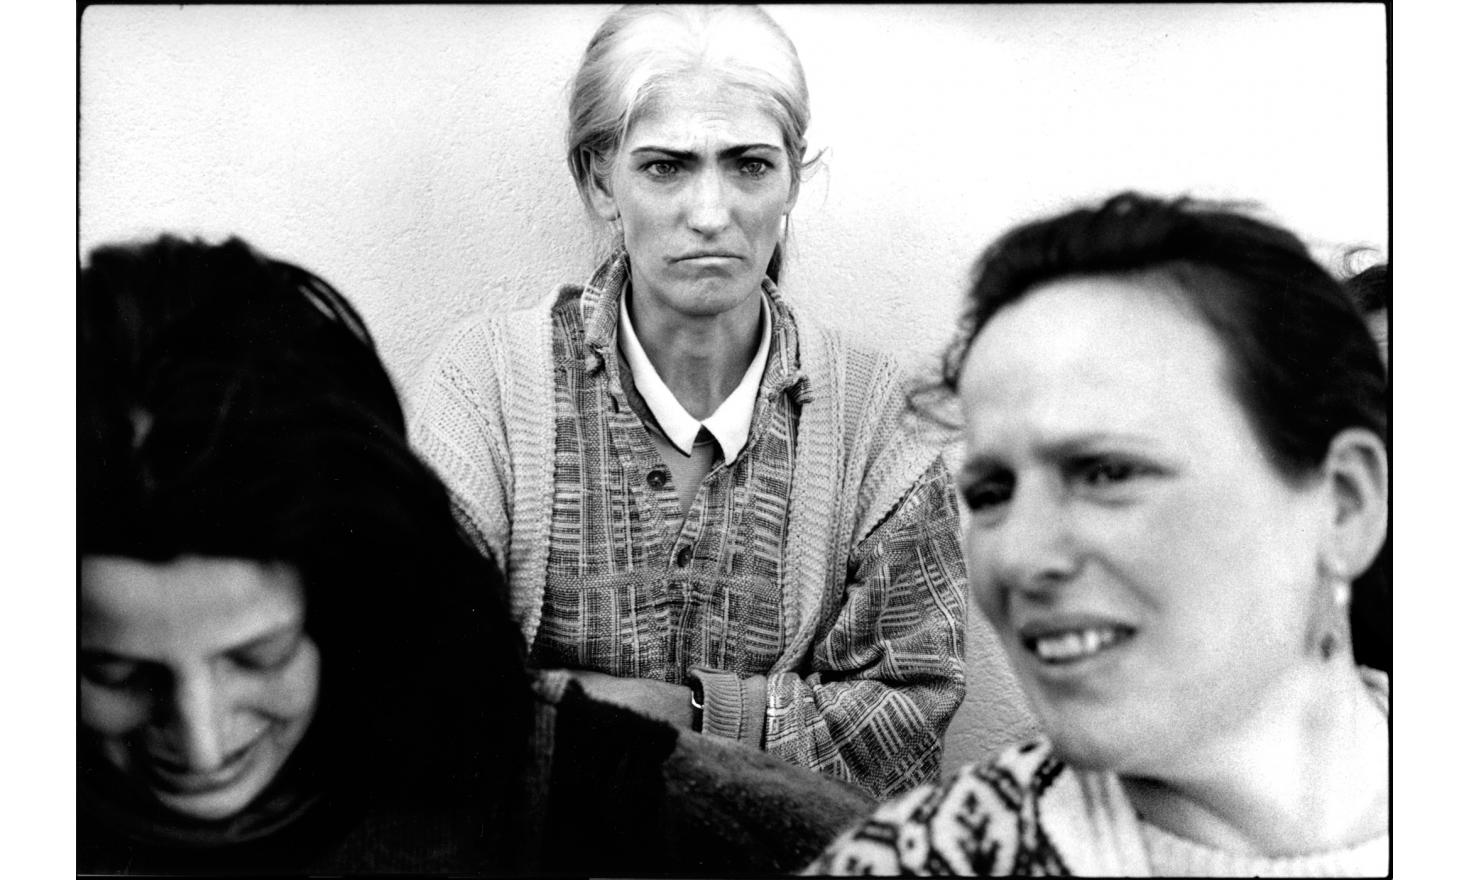 Albanian women from Prekaz, Kosovo. They found shelter in a neighboring village after the attack of the serbian special forces that left 52 dead among the villagers. Kosovo, Serbia. 03-1998.